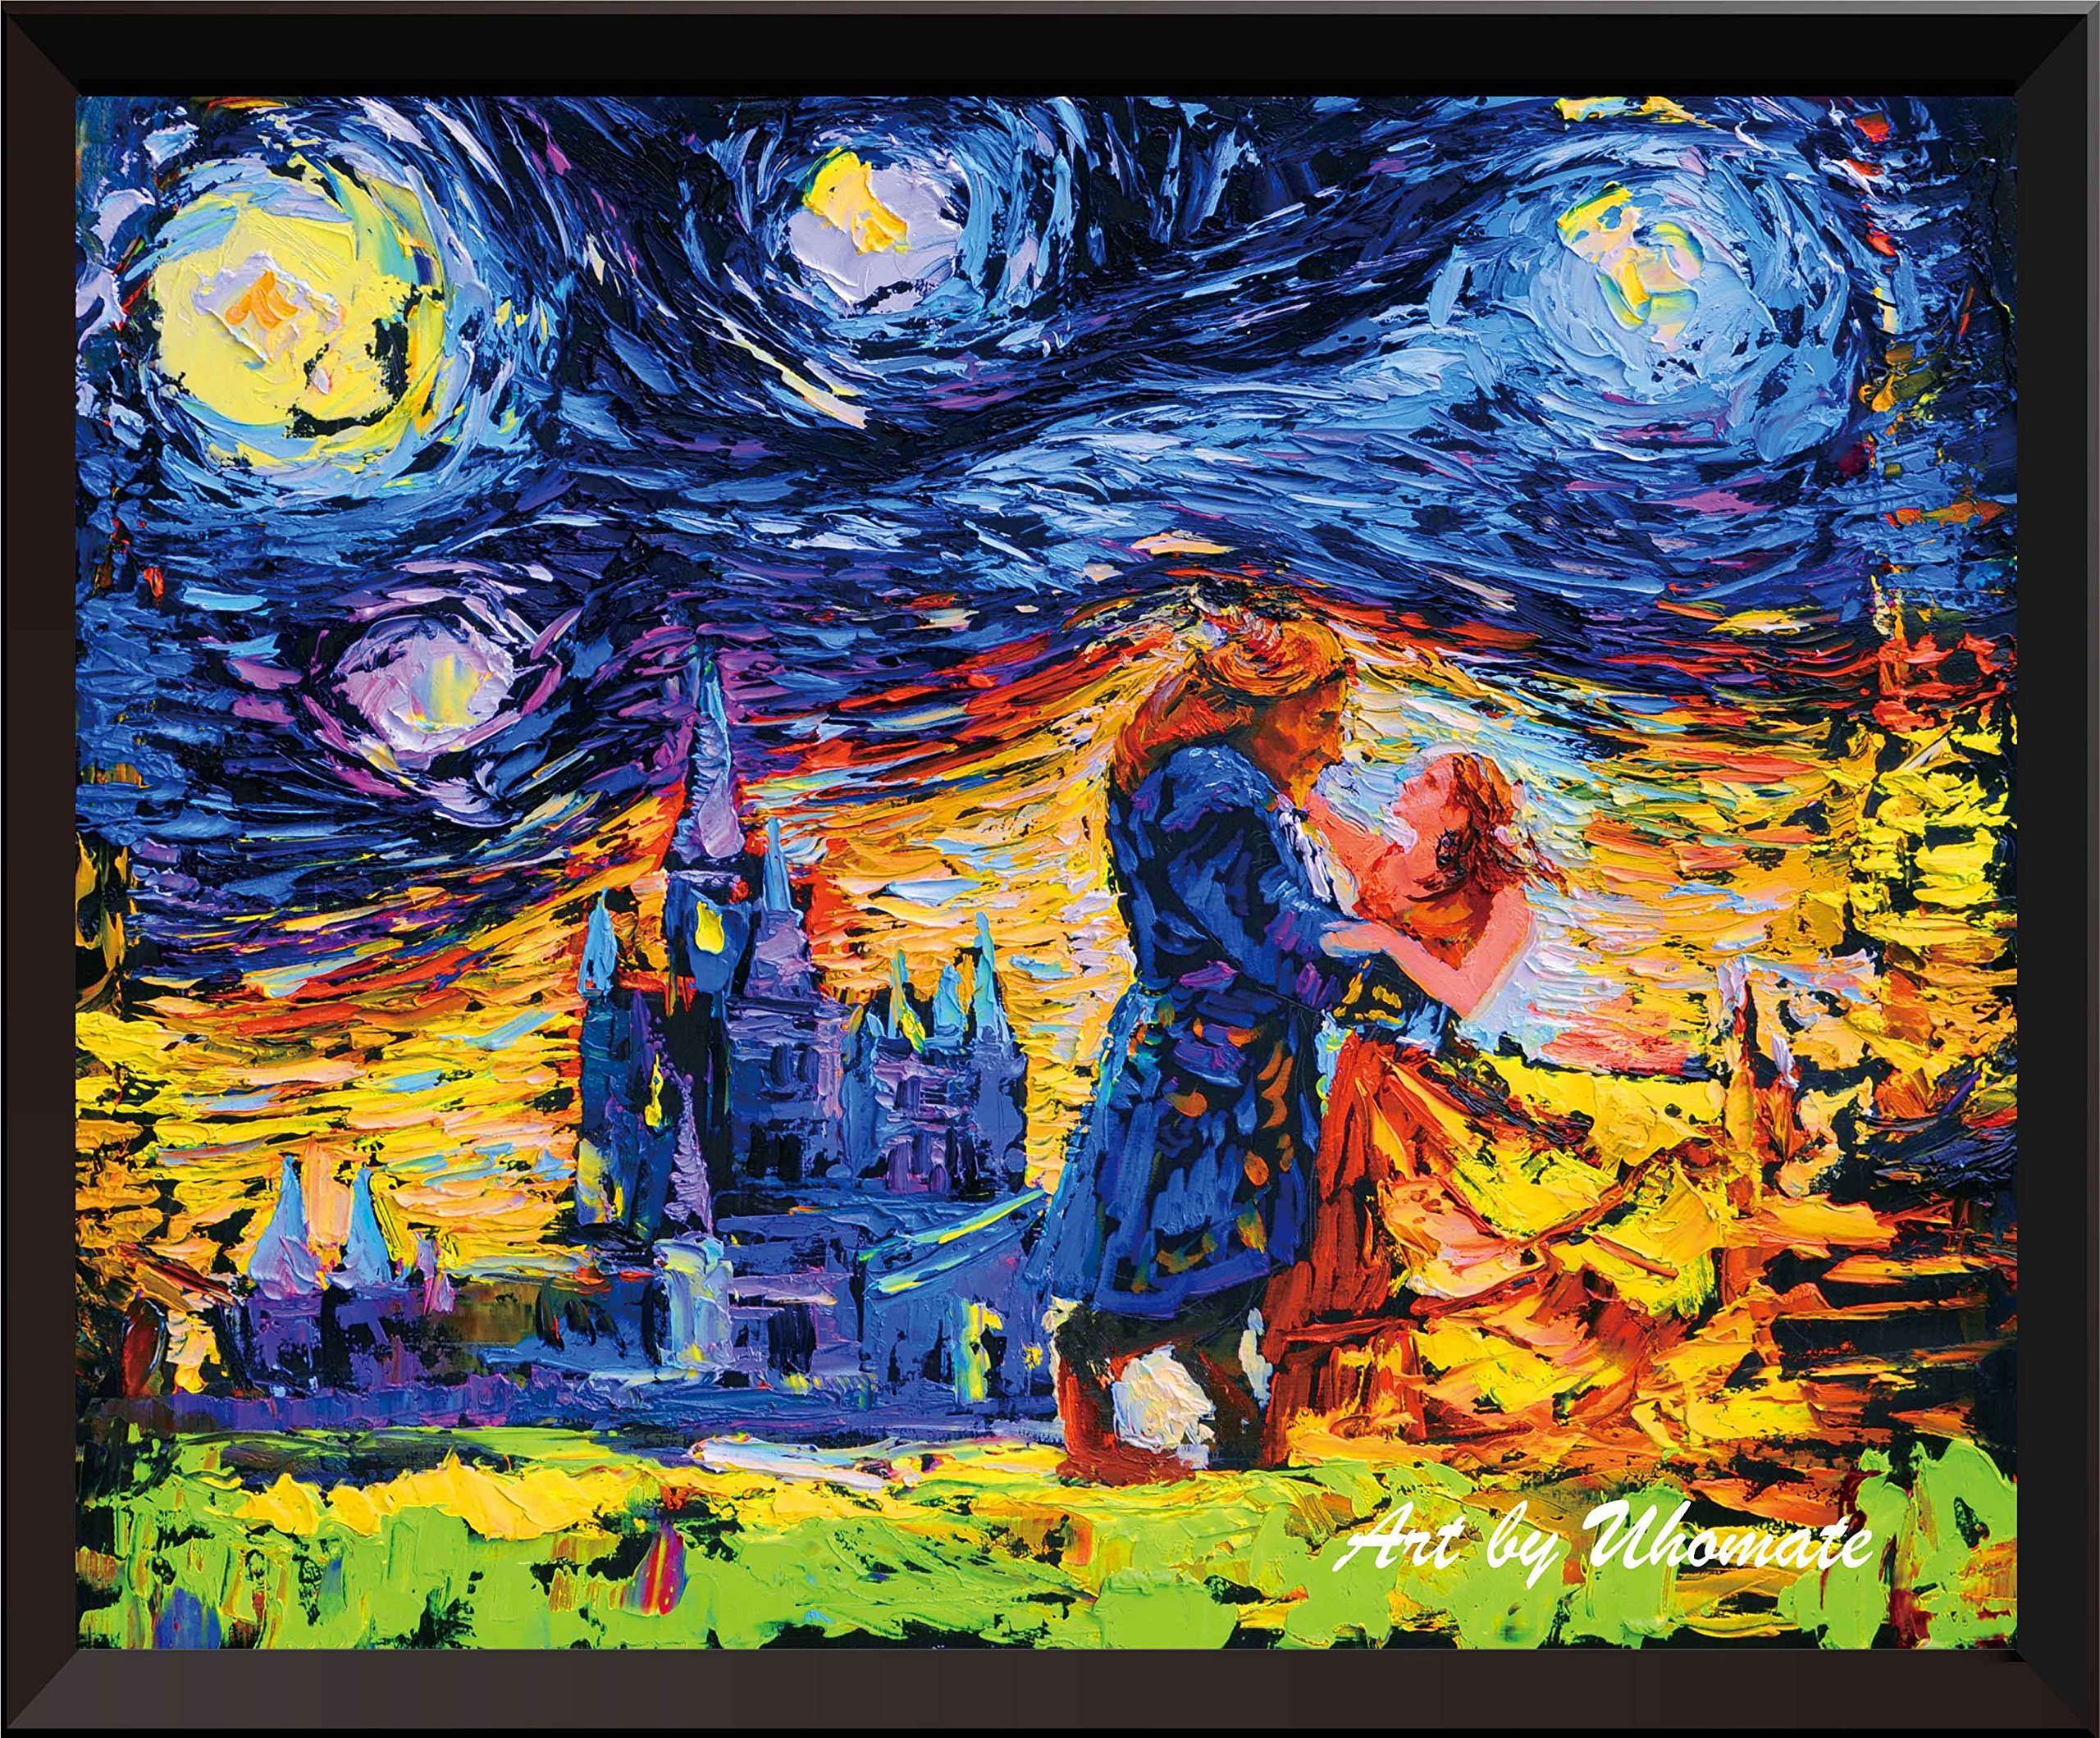 Uhomate Beauty and The Beast Beauty Beast Princess Belle Vincent Van Gogh Starry Night Posters Home Canvas Wall Art Anniversary Gifts Baby Gift Nursery Decor Living Room Wall Decor A001 (5X7 inch)